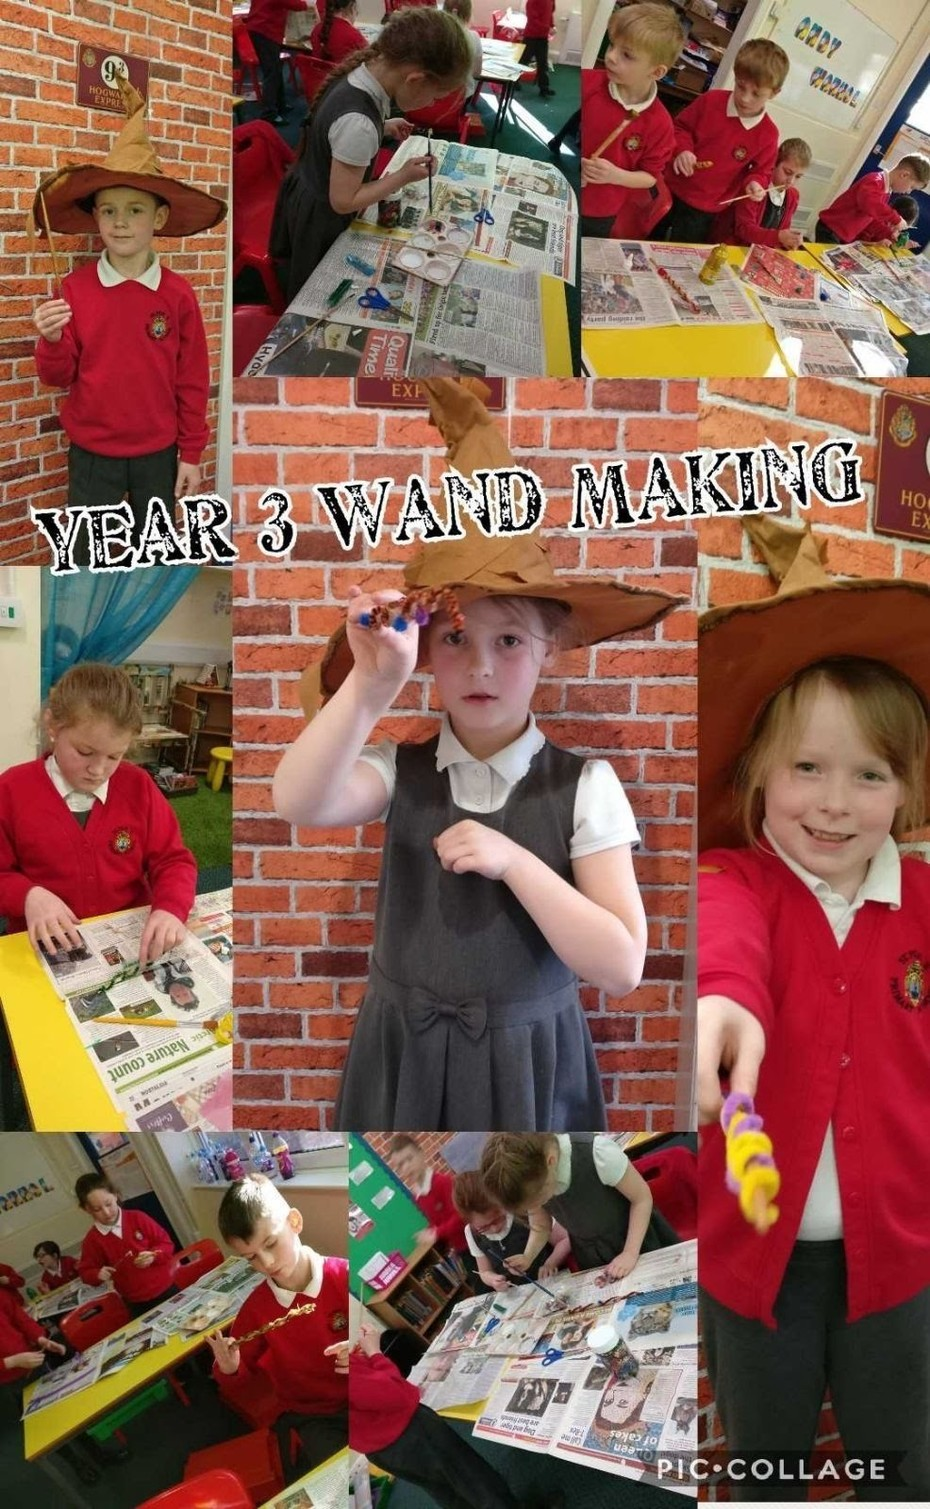 Year 3 Wand Making